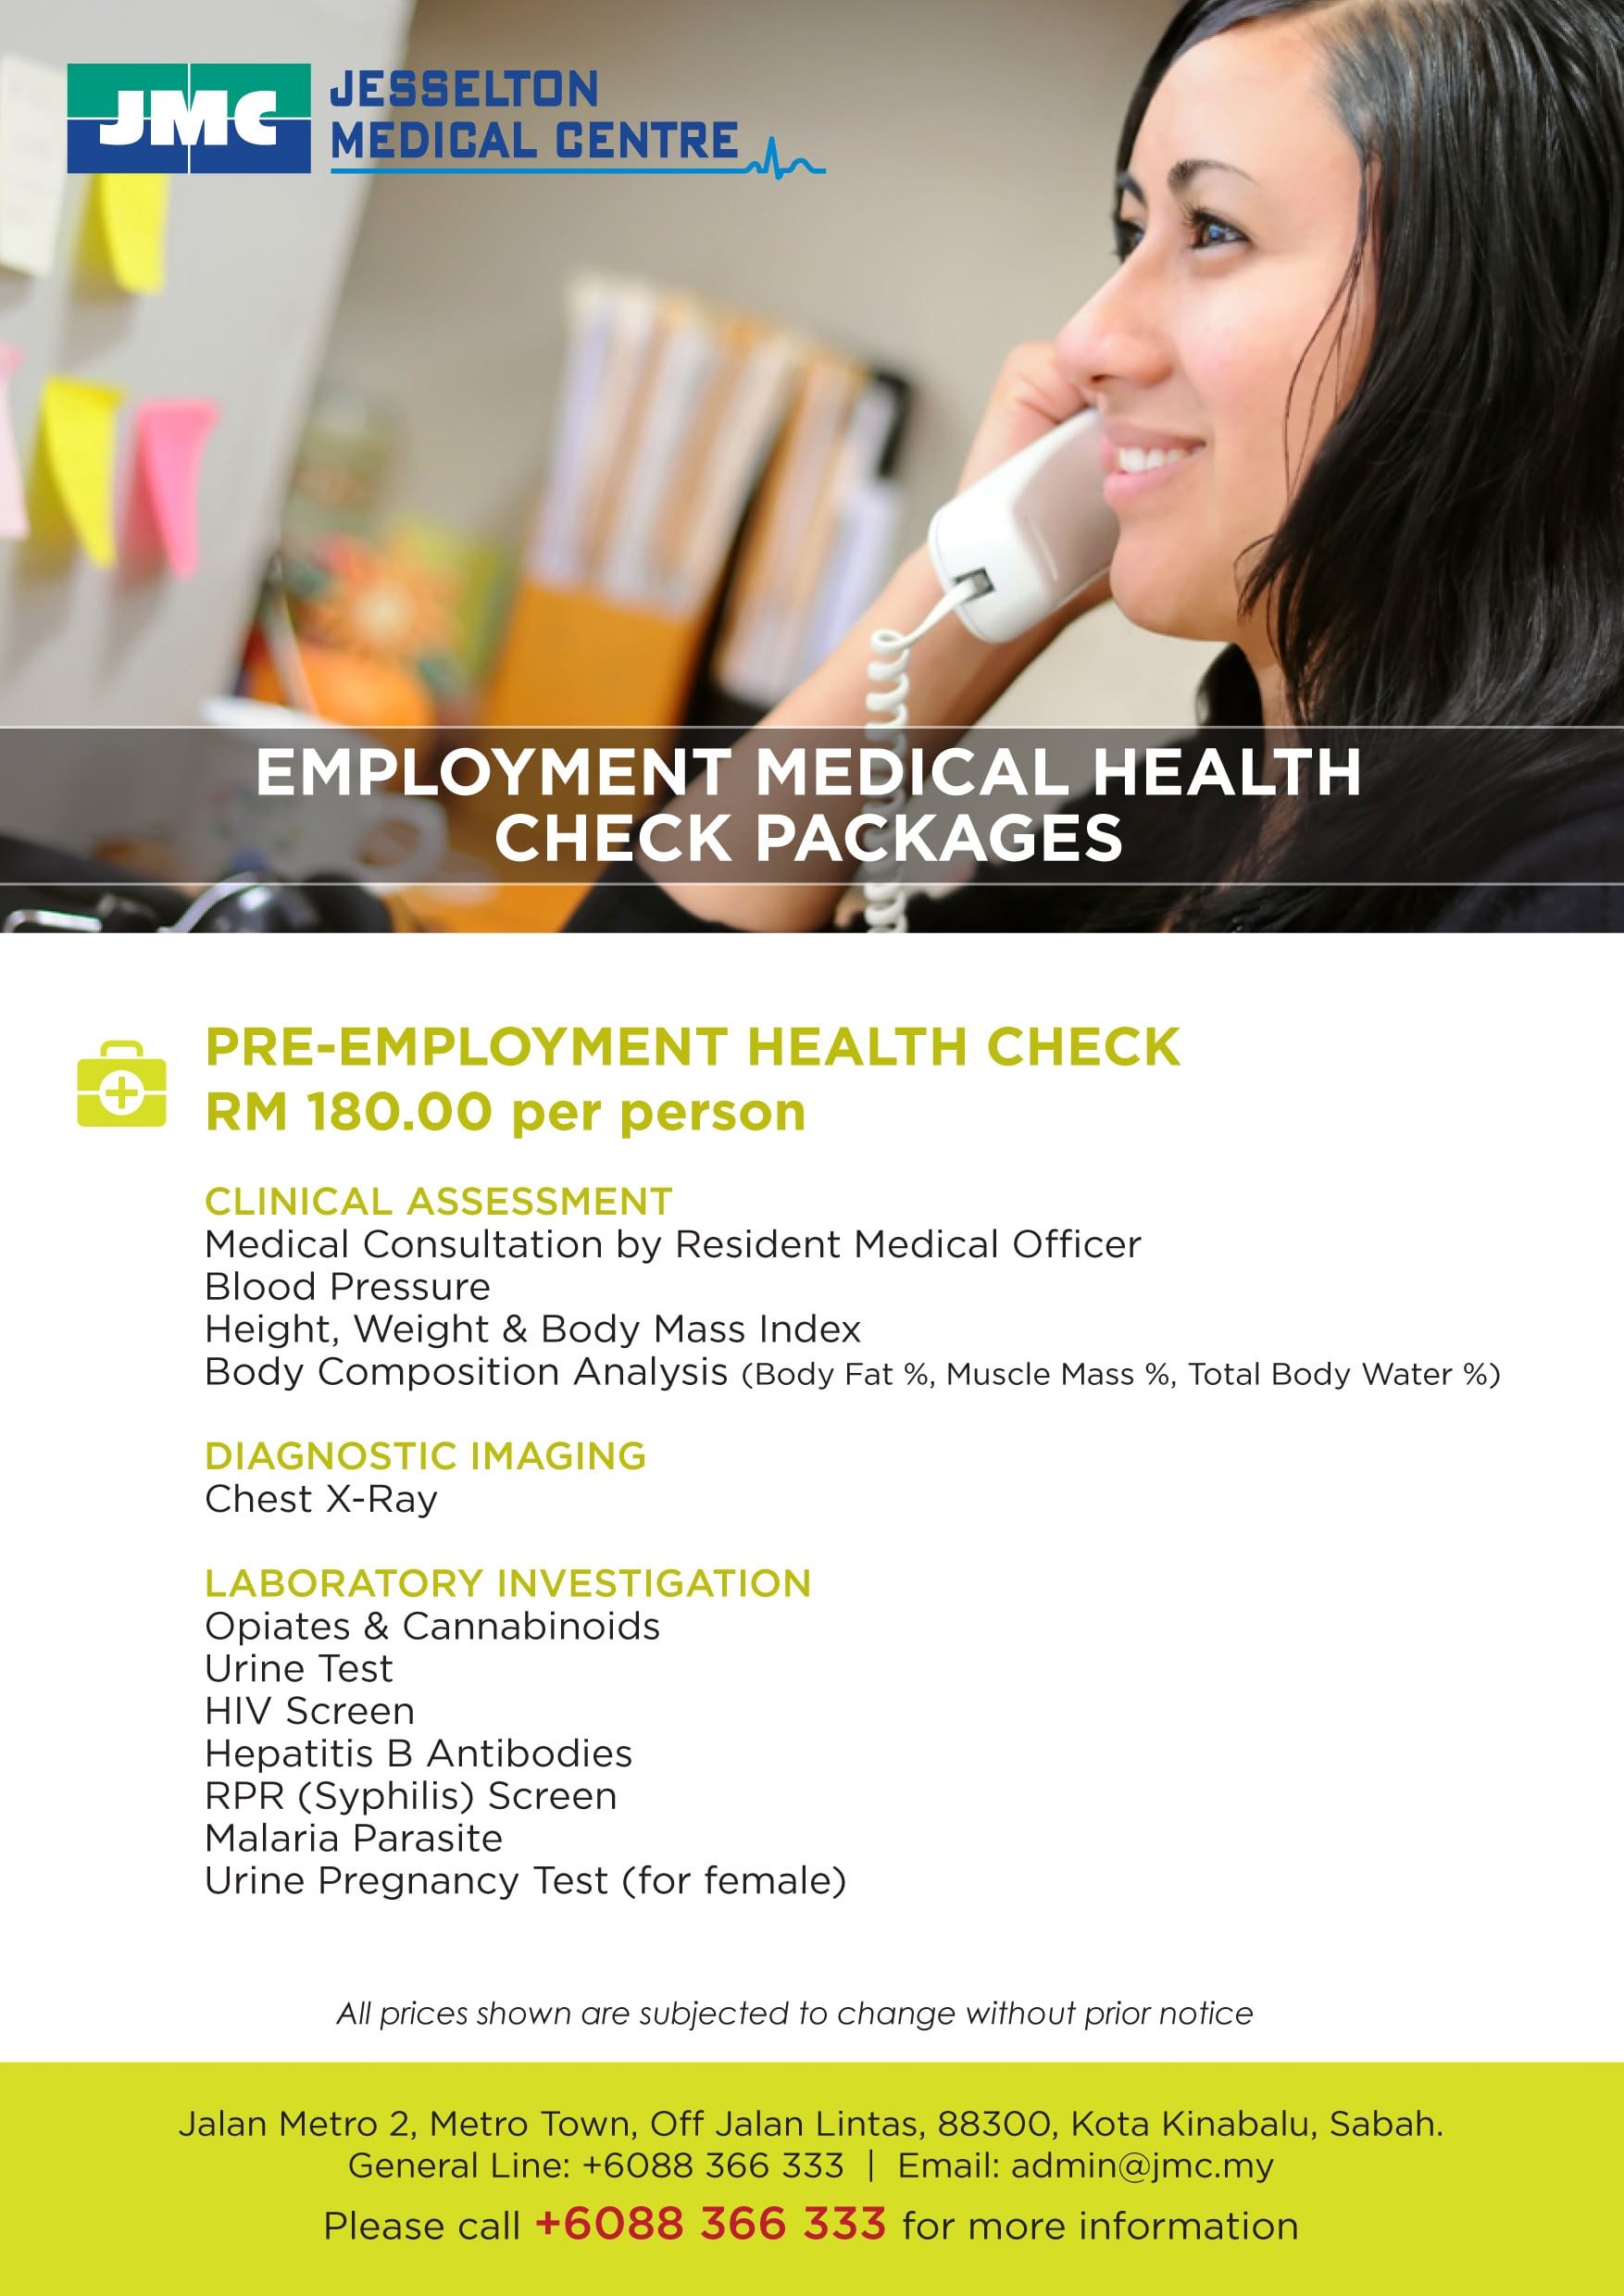 Employment Medical Health Check Packages